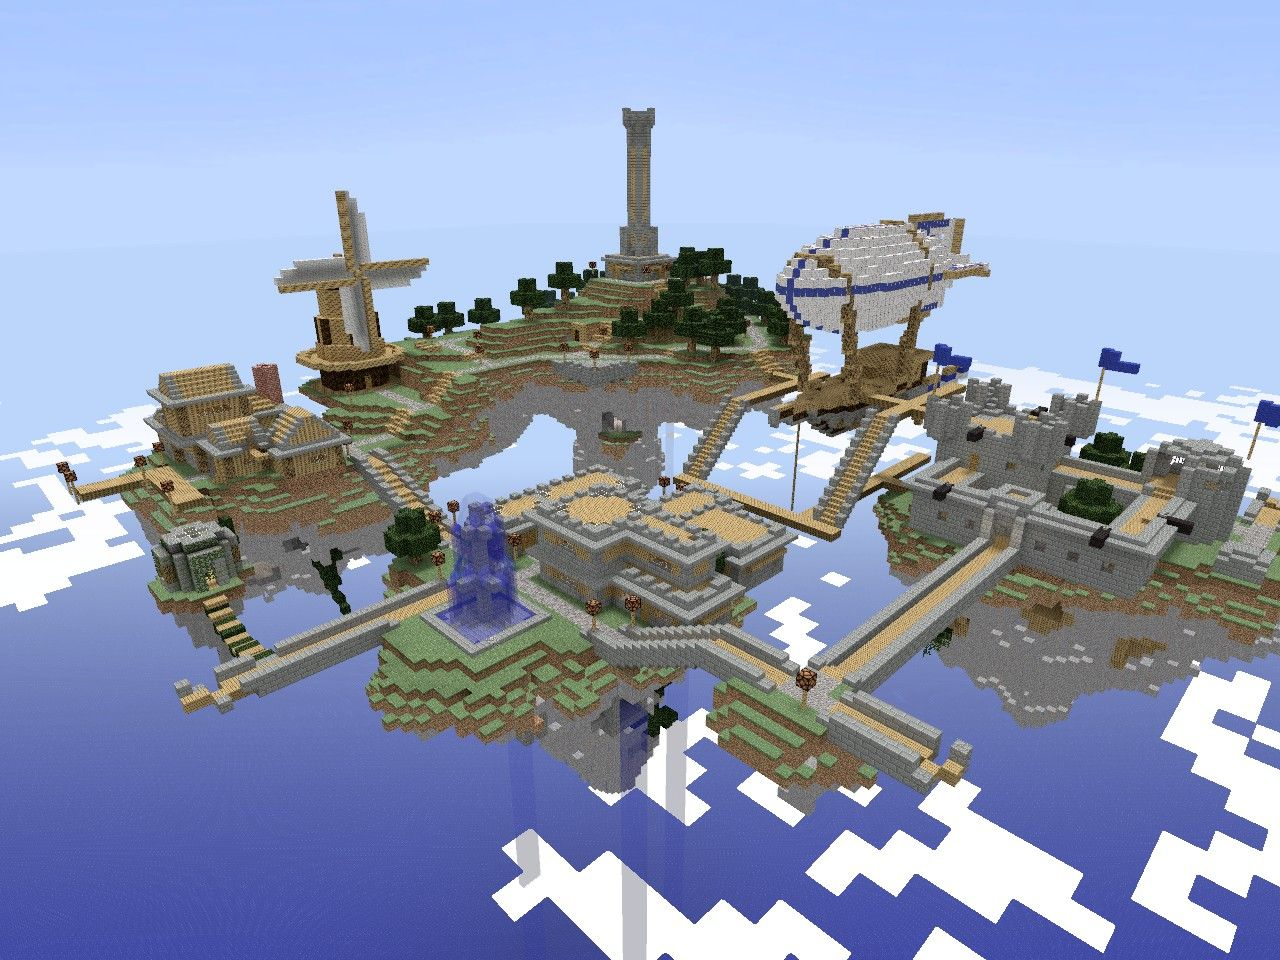 minecraft aether map with Sky Islands 1154373 on Biffa2001 further 913 Pokemon Soleil Et Pokemon Lune La Region Dalola in addition Watch furthermore Jurassic Park Pe Map For Mcpe together with The Great Pyramid Of Meereen Game Of Thrones.